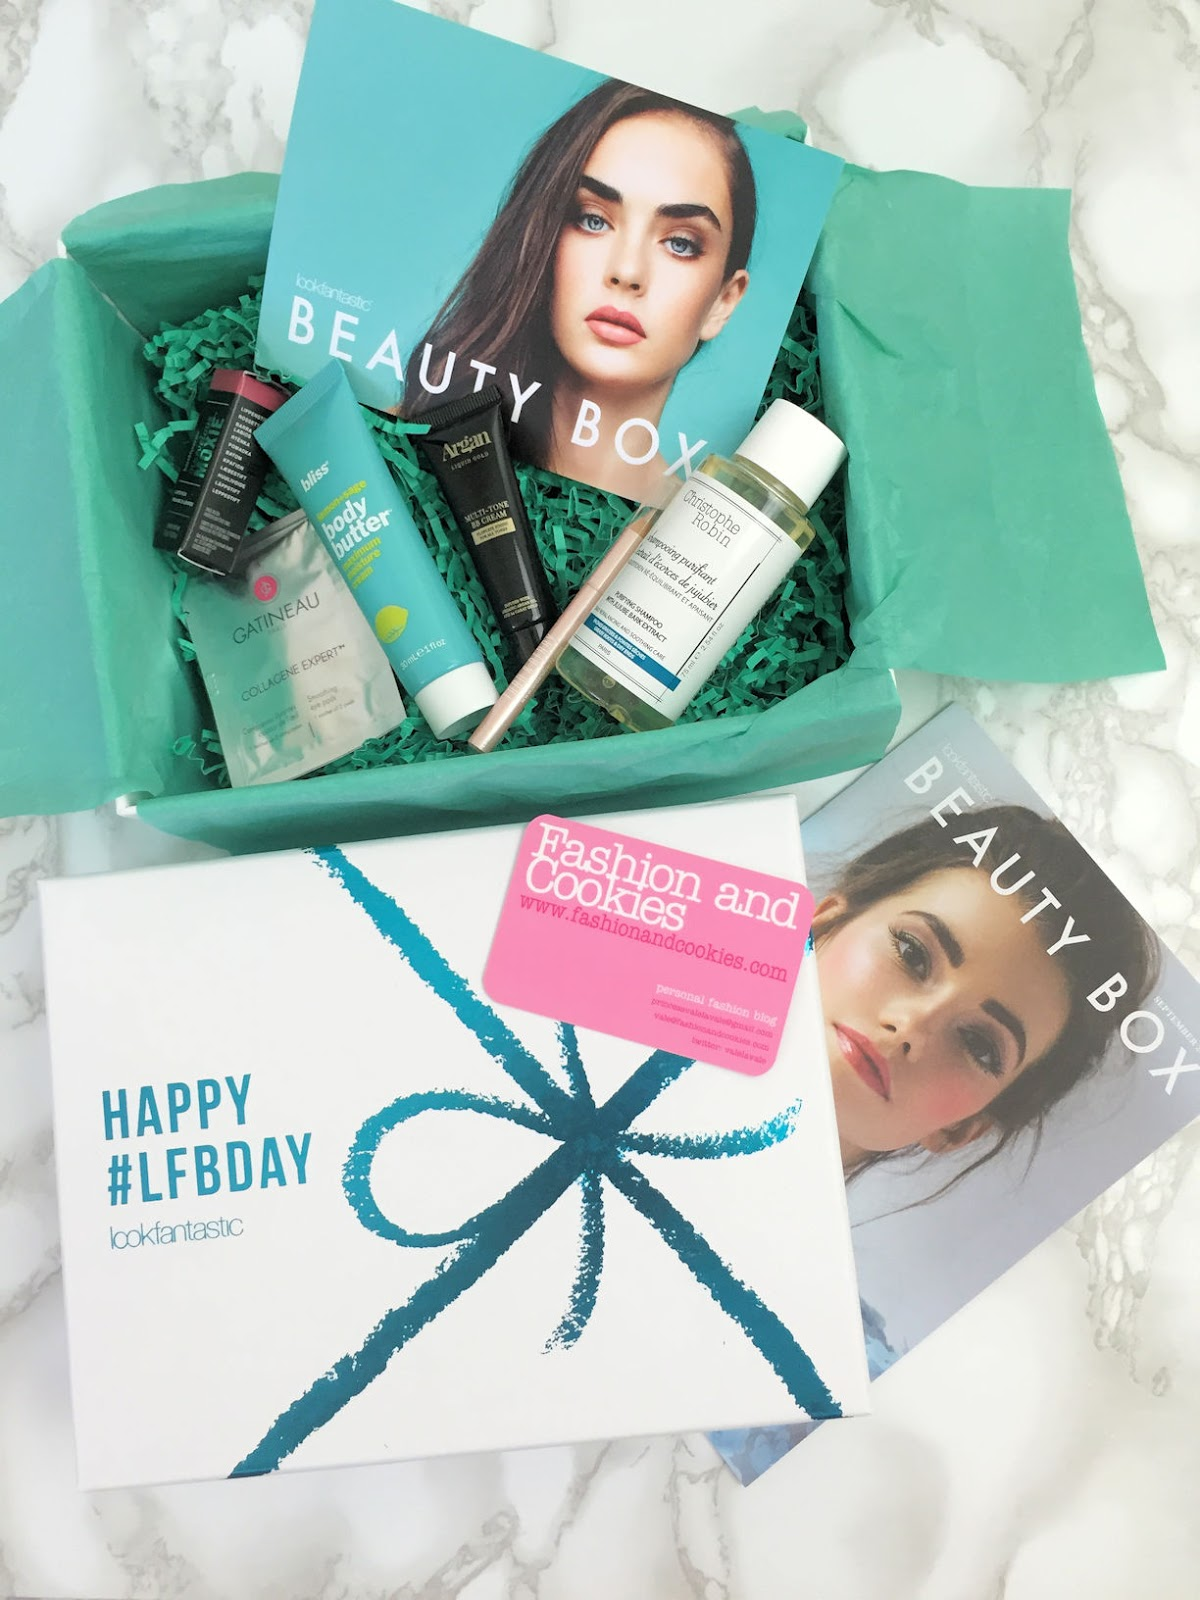 Lookfantastic Beauty Box from September 2016 review on Fashion and Cookies beauty blog, beauty blogger